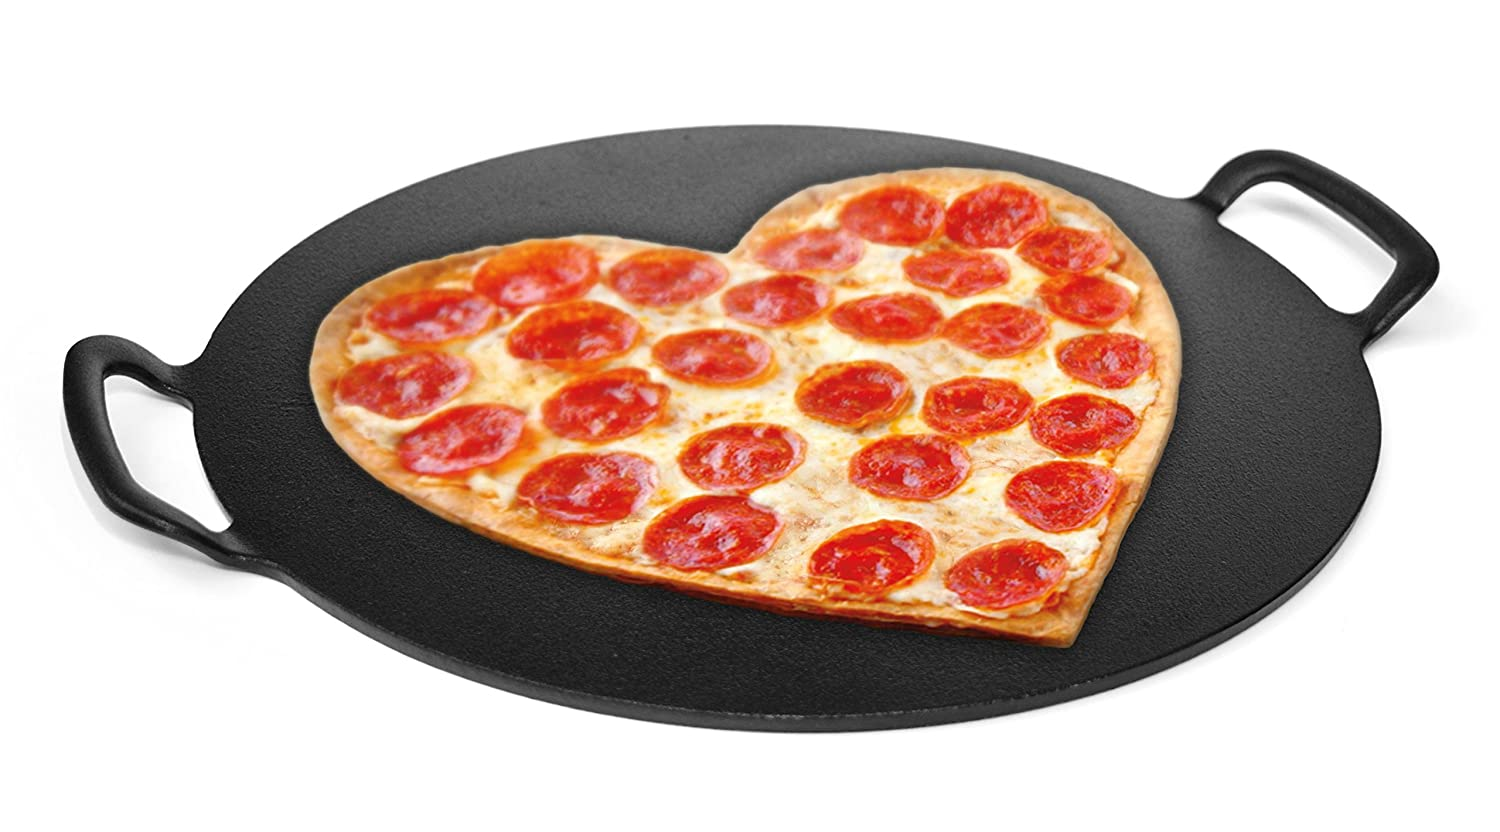 15 Pizza Stone, Solid Cast Iron. TOTALLY FLAT. INDESTRUCTIBLE. Perfect Pizza Crust from your Home Oven or Grill. 15 Pizza Stone PATINA Premium SYNCHKG104944